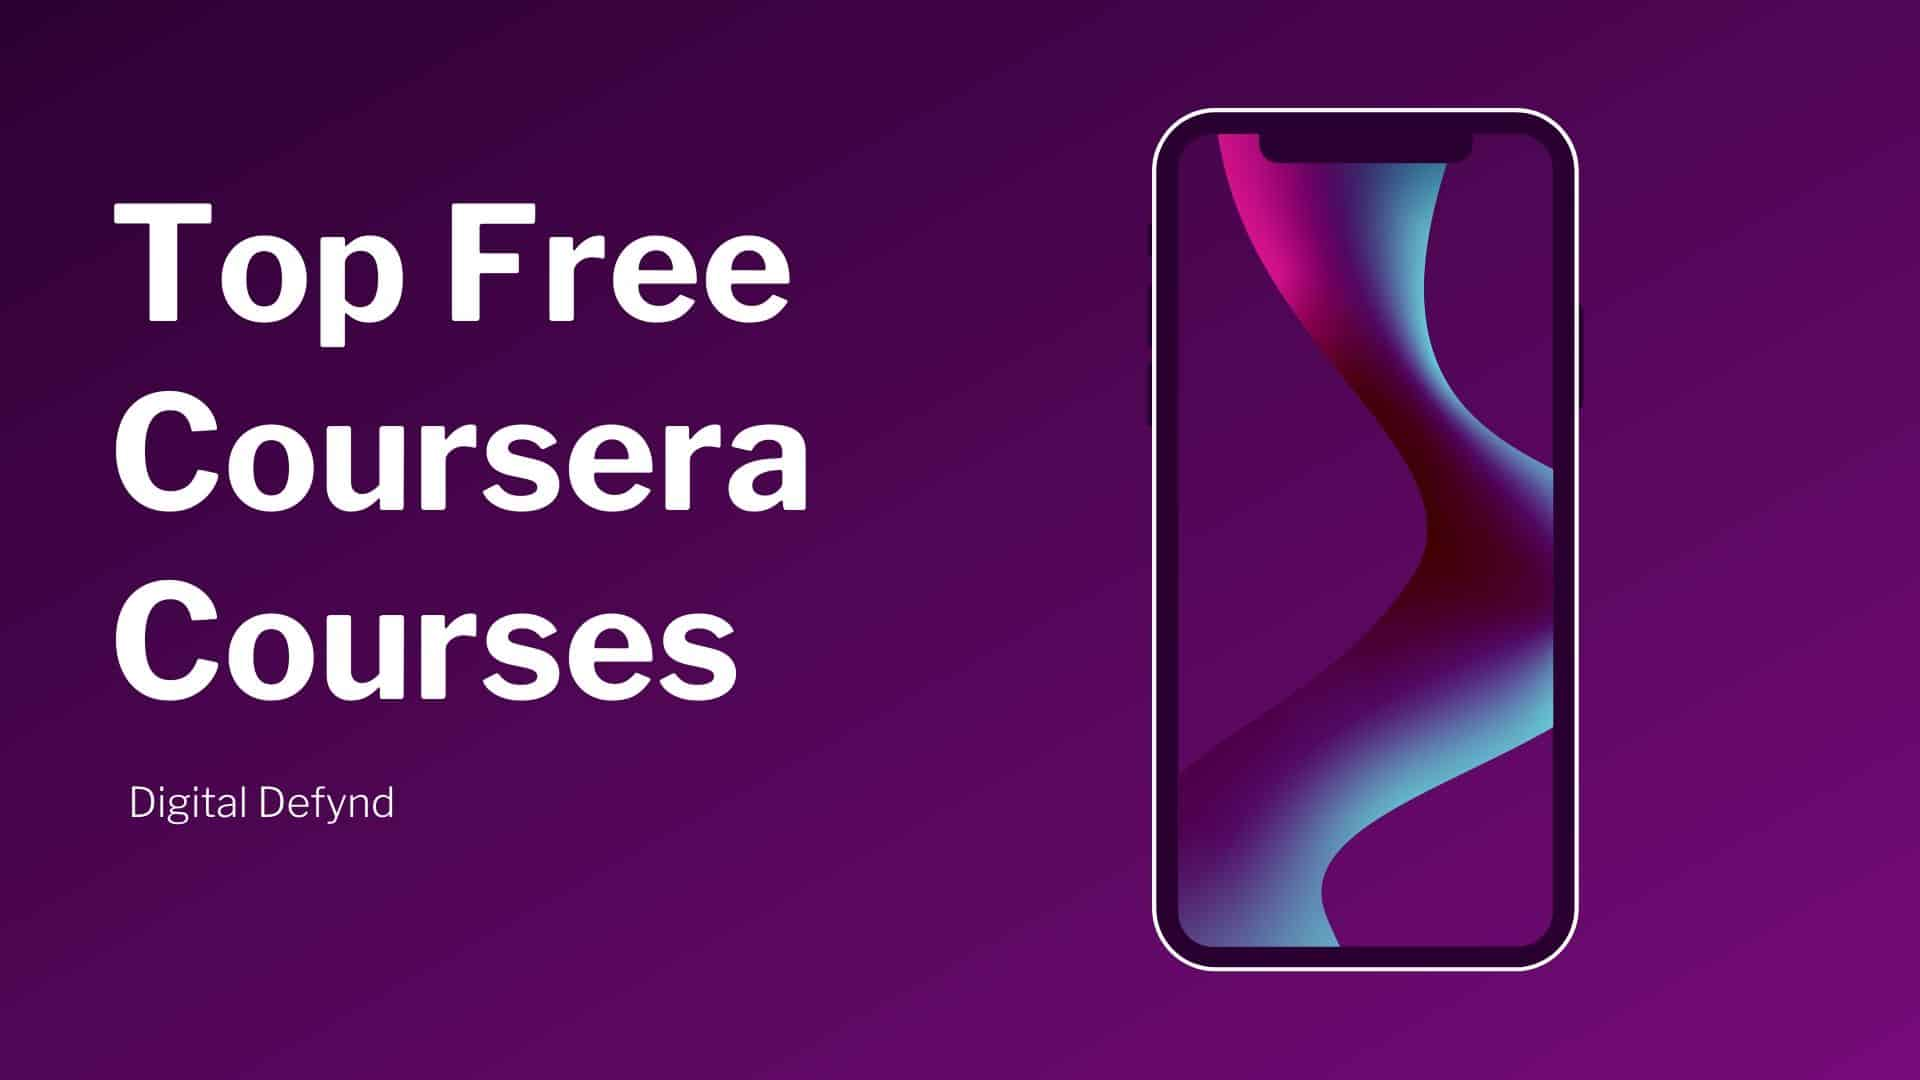 Free Coursera Courses